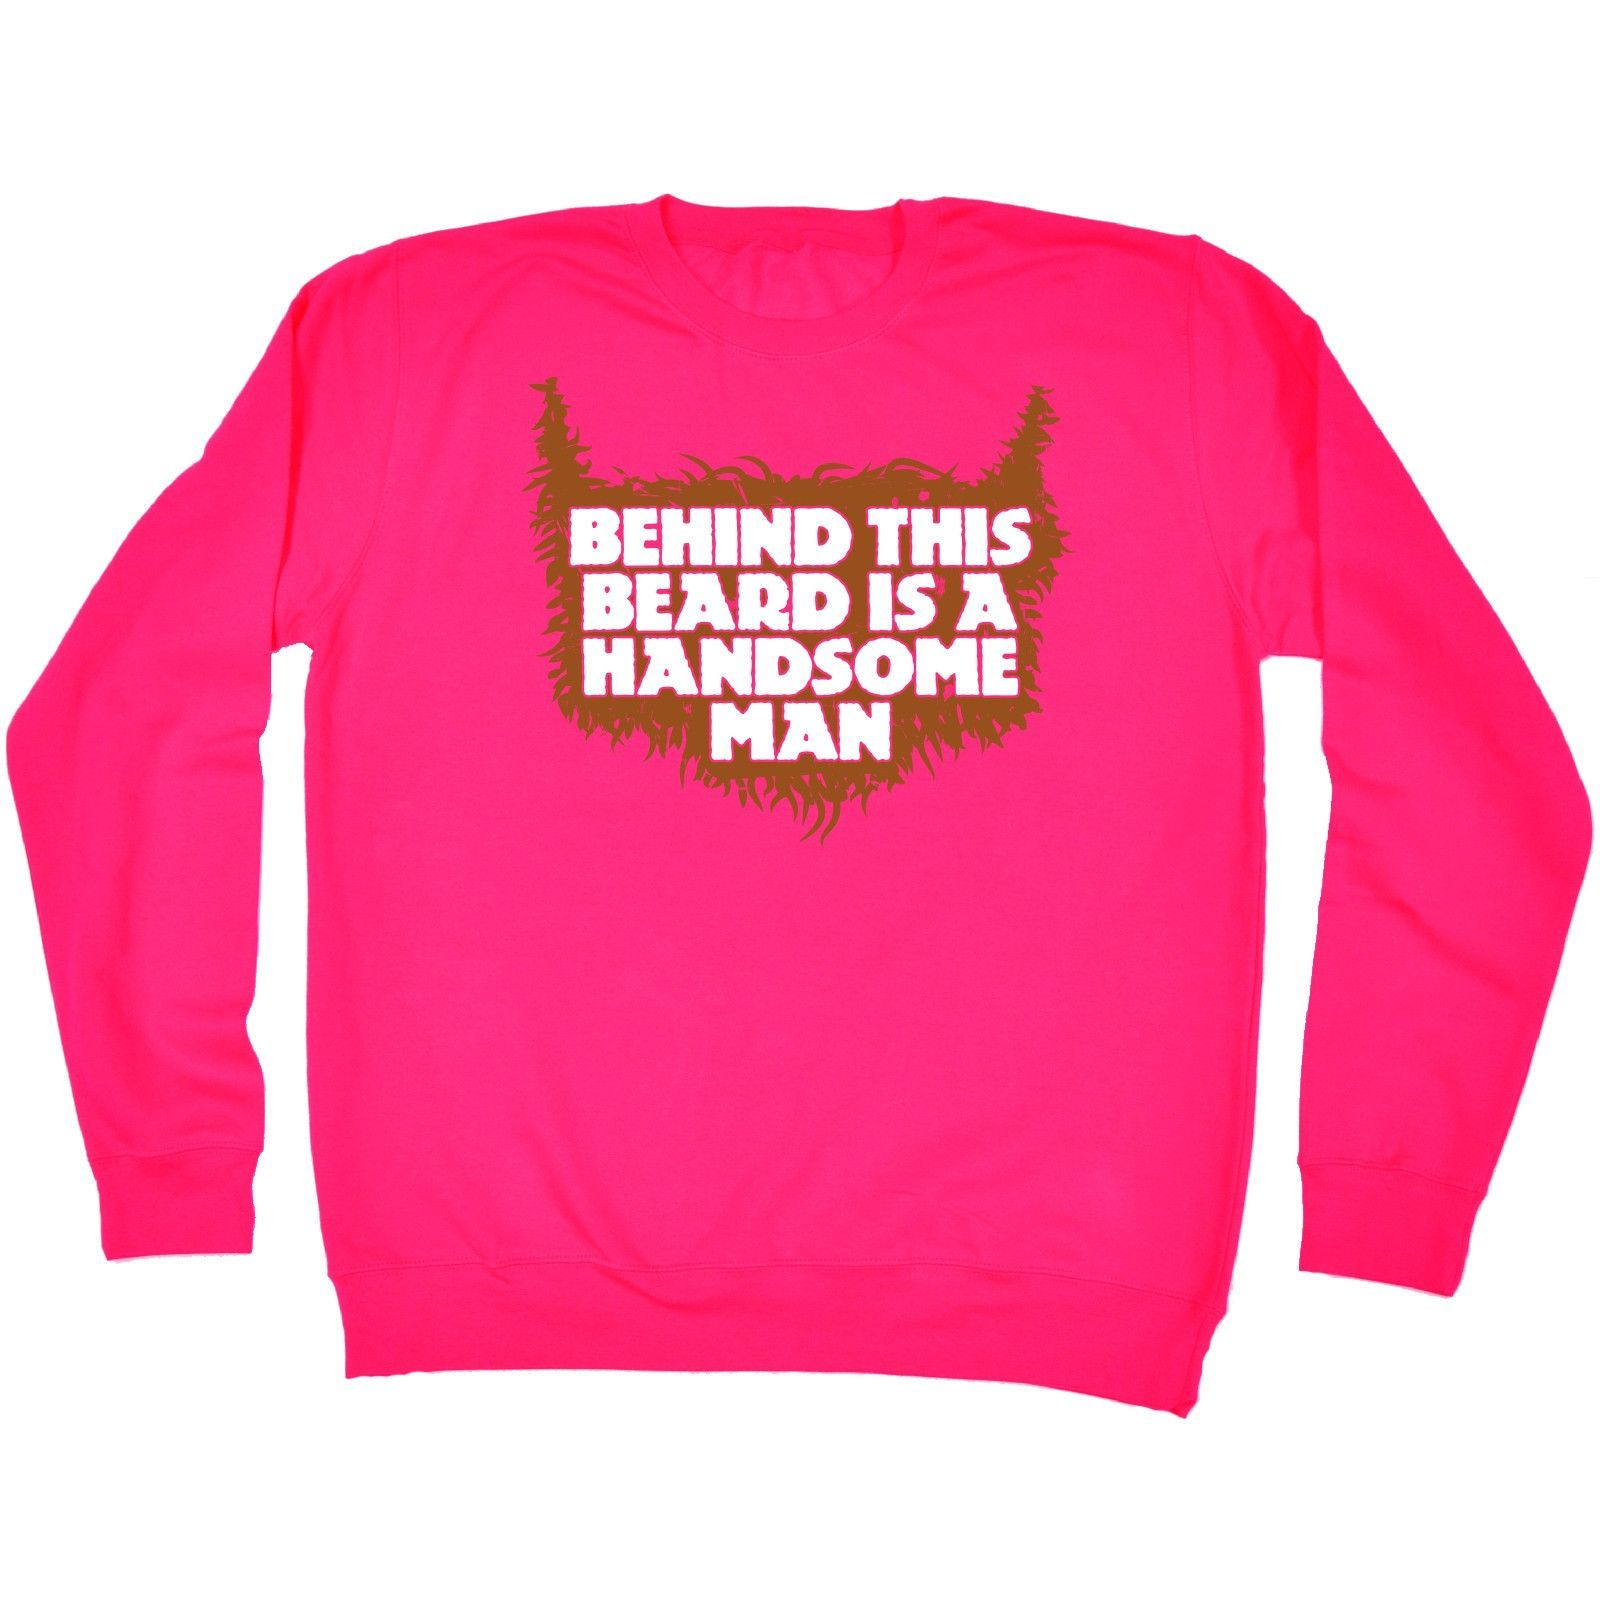 123t USA Behind This Beard Is A Handsome Man Funny Sweatshirt